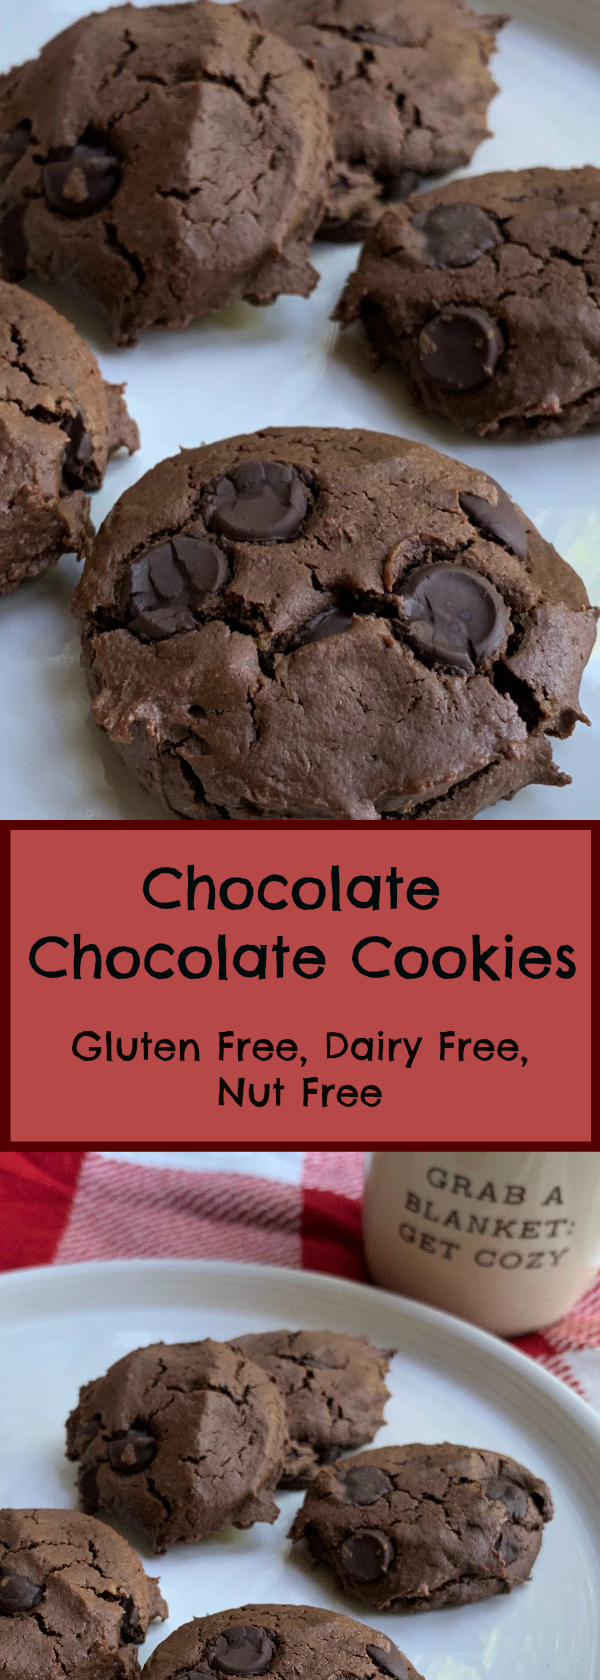 Chocolate Chocolate Cookies Gluten, Dairy and Nut Free